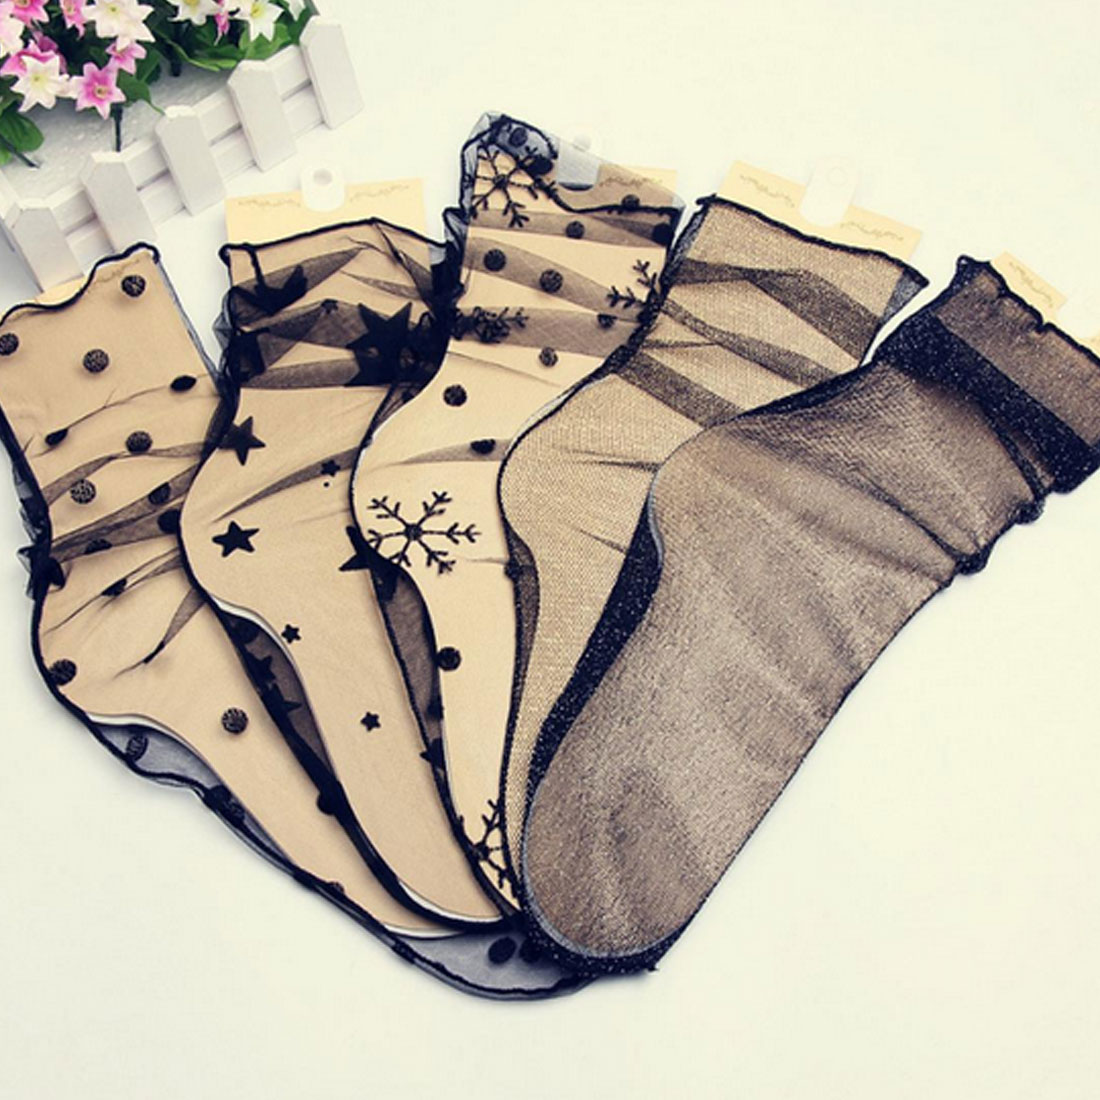 Women's Harajuku Breathable Transparent Mesh Small Polka Dots Socks Lady Net Yarn Fishnet Dots Socks Female Hosiery Soxs